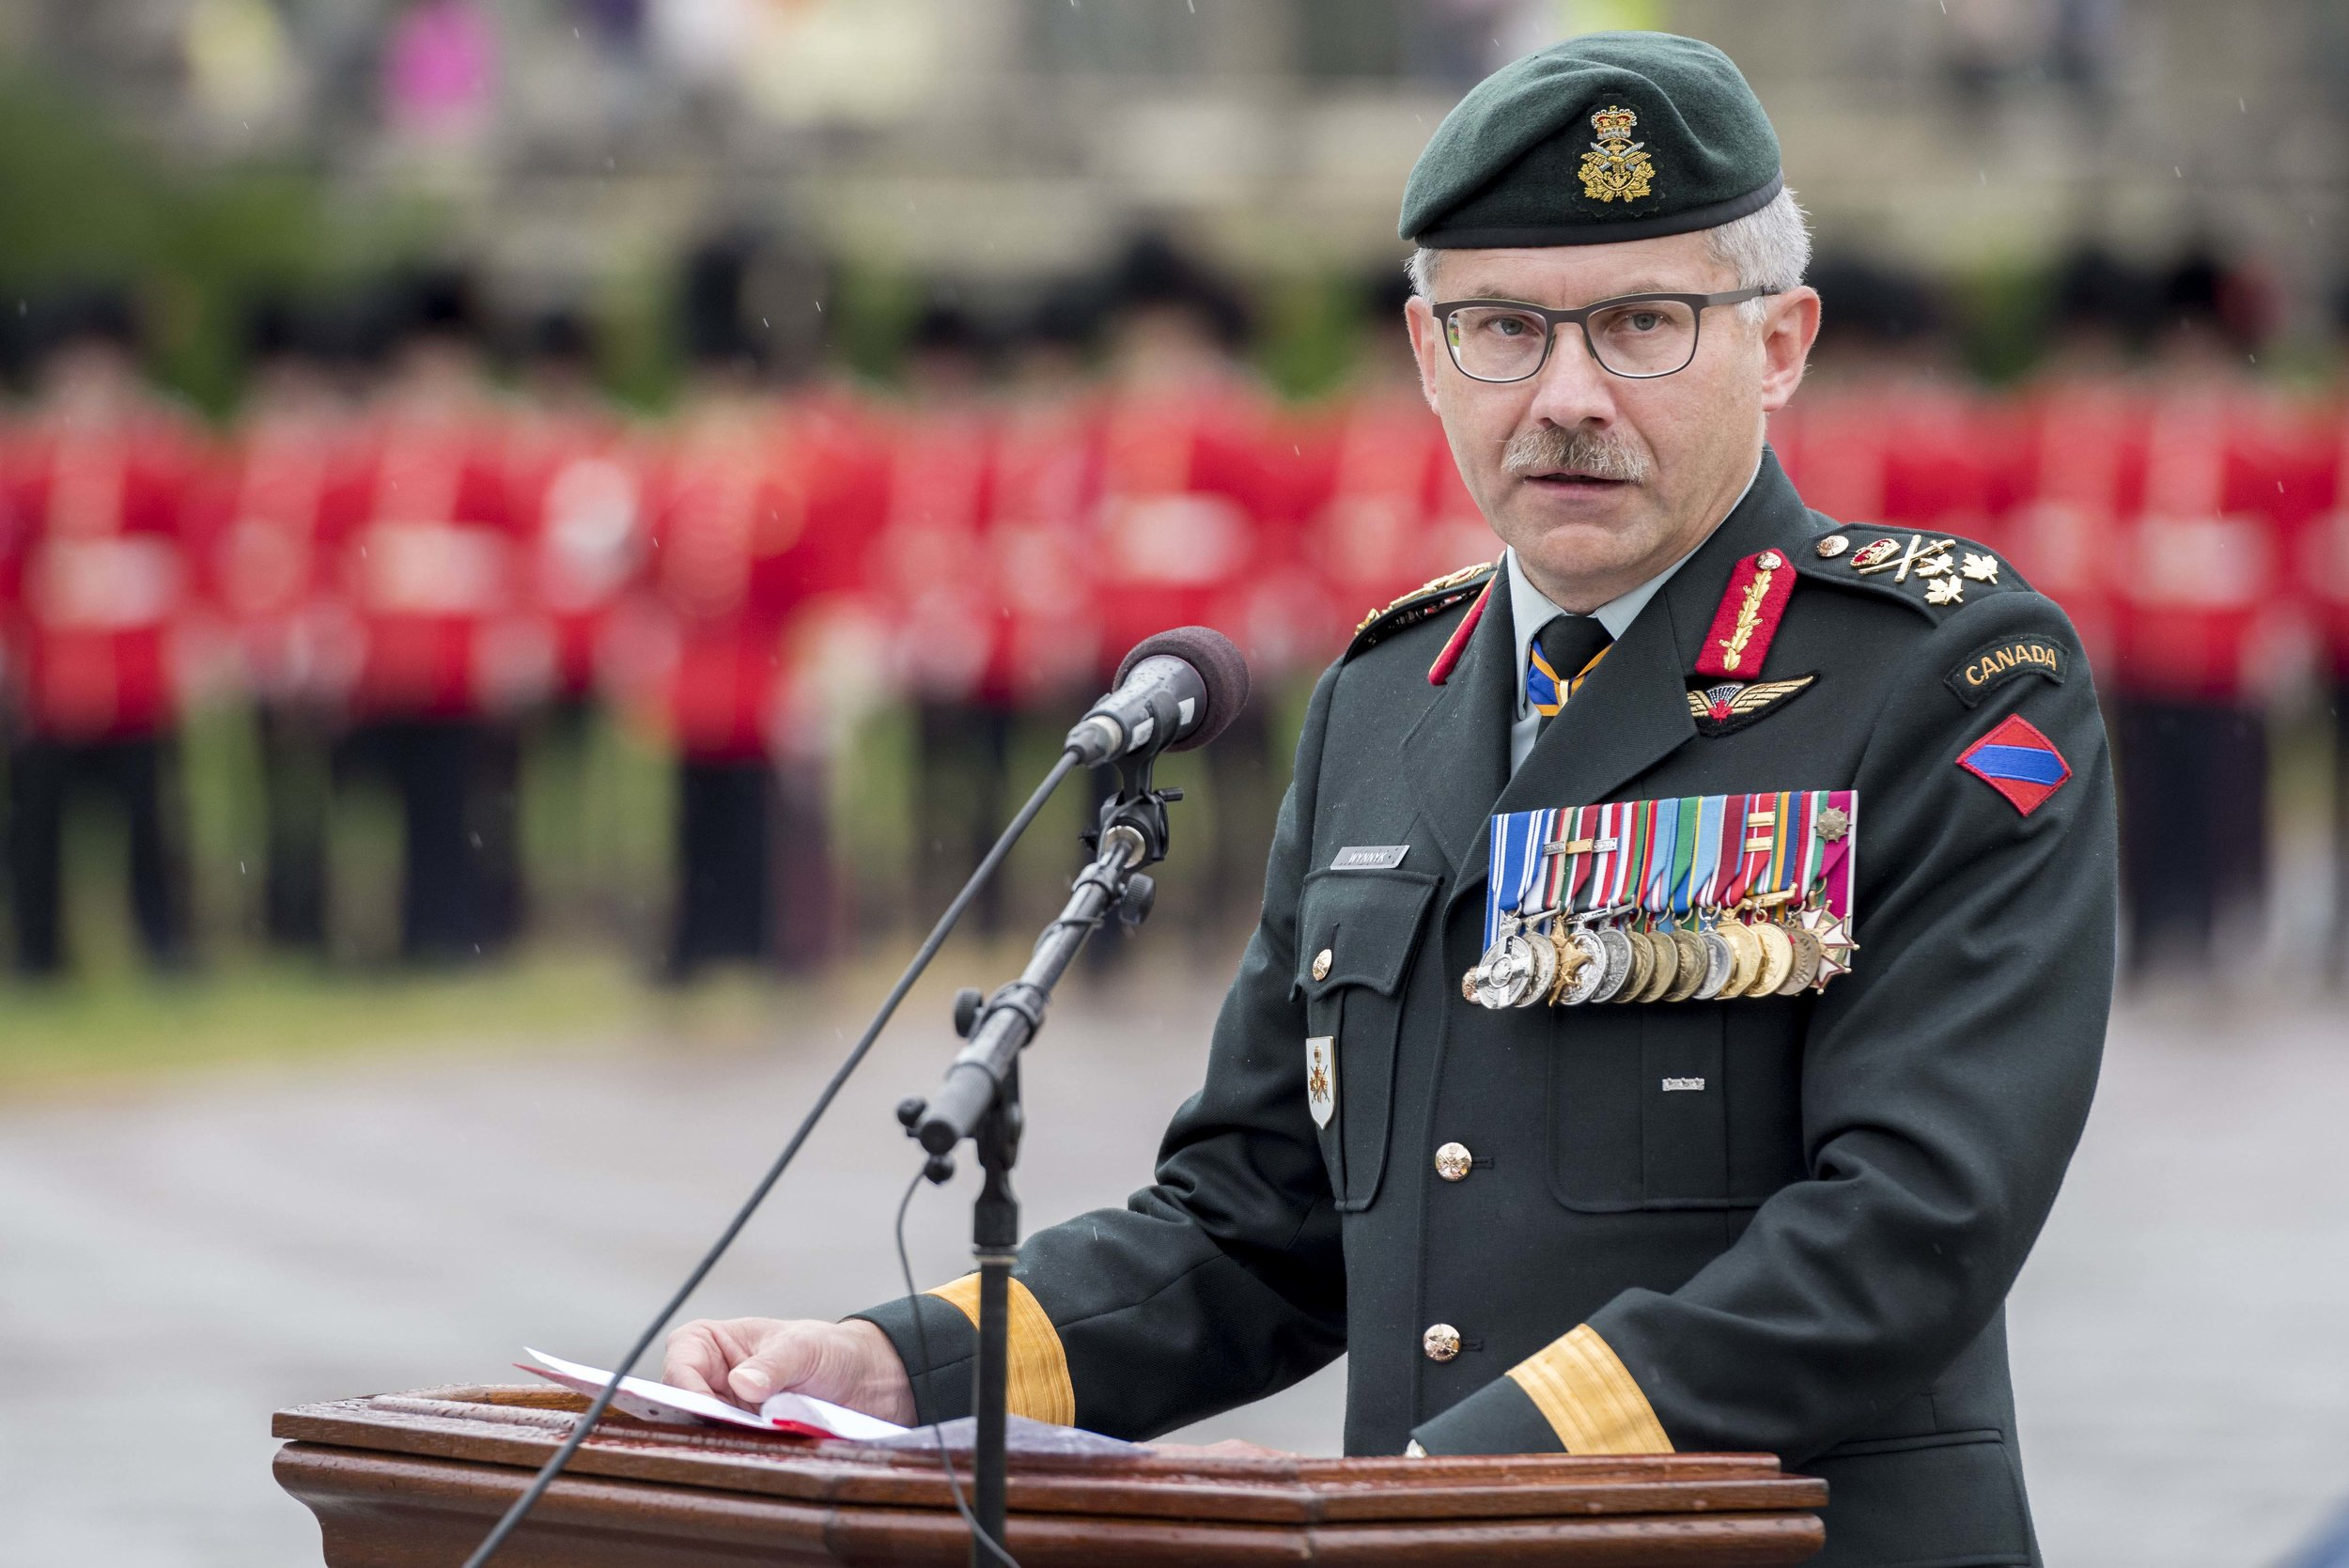 Lieutenant-General Paul Wynnyk addresses the crowd in attendance during the official Commander of the Canadian Army Change of Command Ceremony that was held on Parliament Hill in Ottawa, on July 14, 2016. The parade marked the formal hand-over of the leadership of the Canadian Army from Lieutenant-General Marquis Hainse to Lieutenant-General Paul Wynnyk. (cpl andrew wesley, directorate army public affairs)